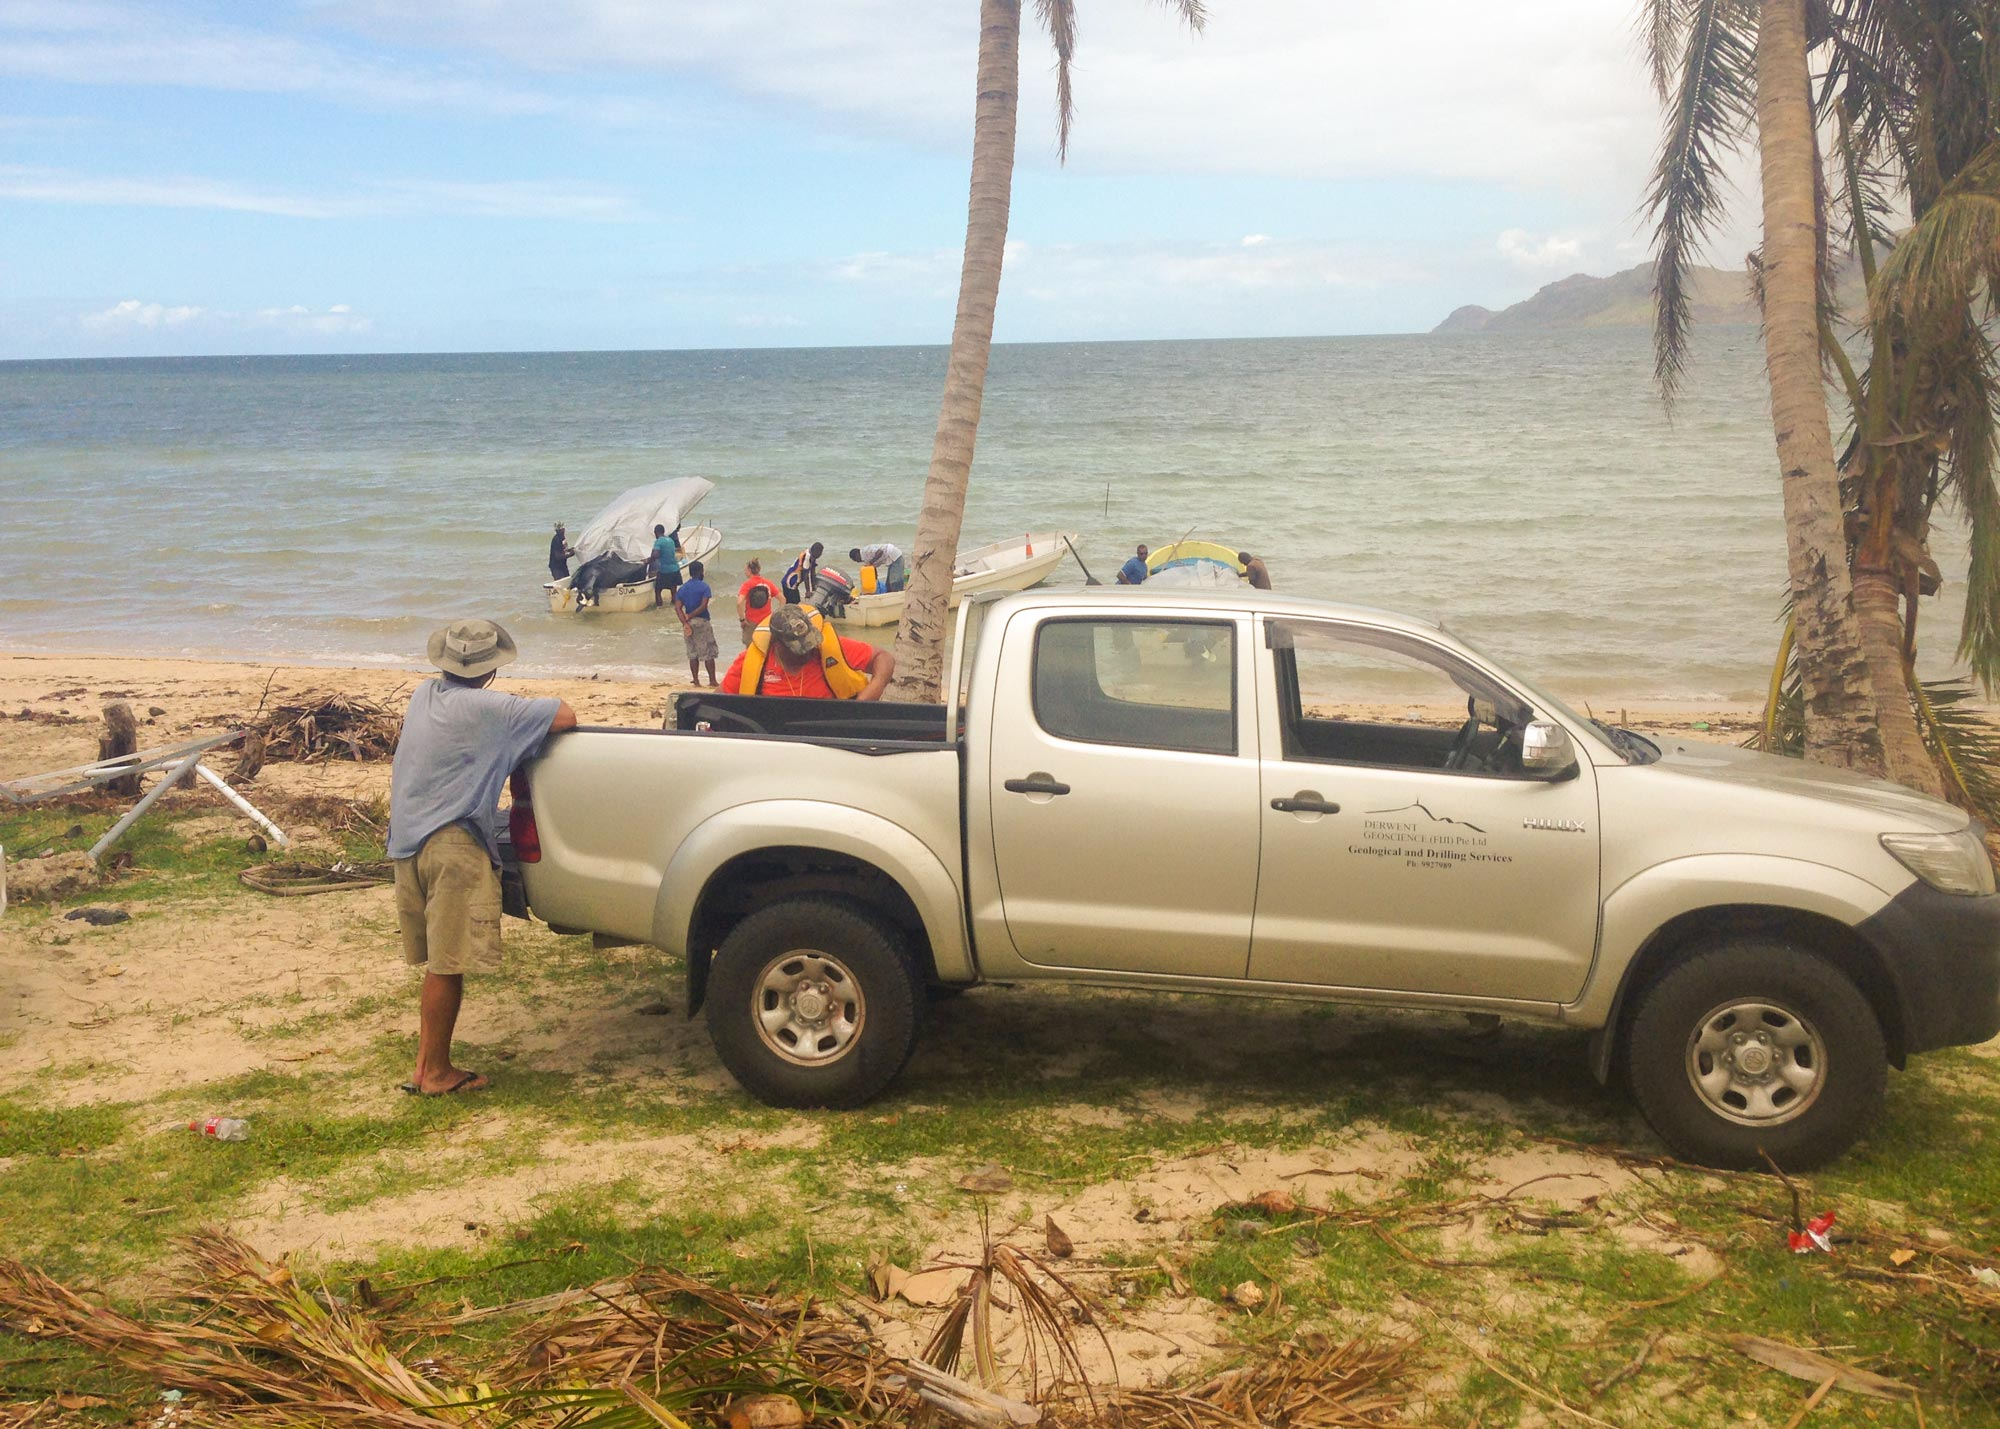 Derwent Geoscience Geology Fiji Mineral Exploration - at work on the beach